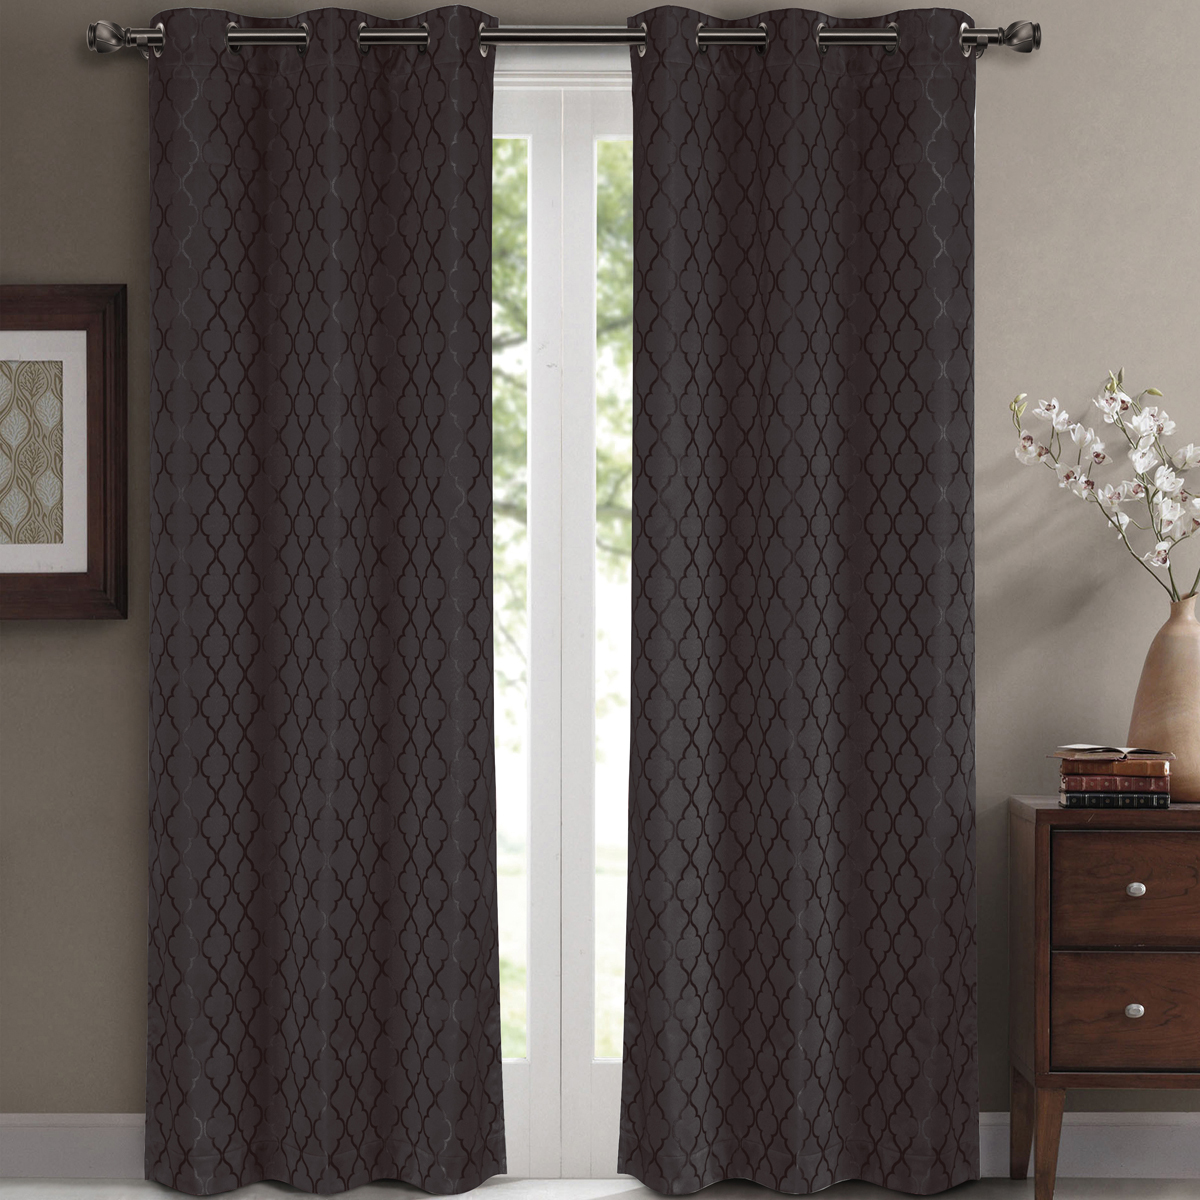 Striped Thermal Curtains | Thermal Insulated Curtains | Insulated Drapery Panels